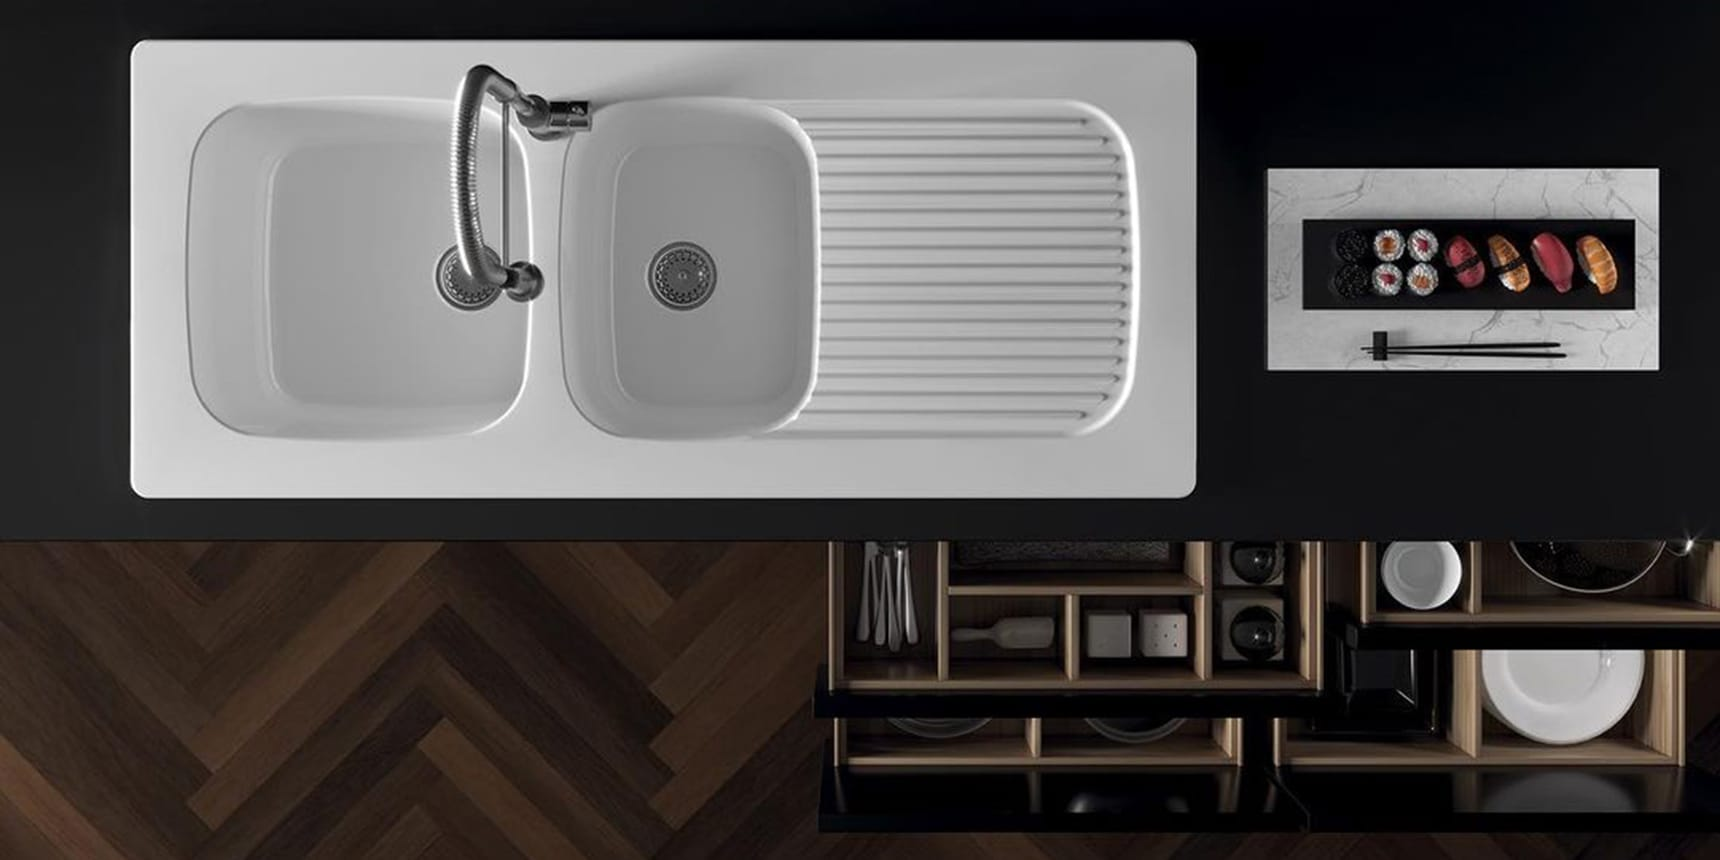 RECESSED / FURNITURE SINK Genius sink. Reversible. Genius reversible recessed sink. Recessed/countertop sink with 2 cm edge thickness.